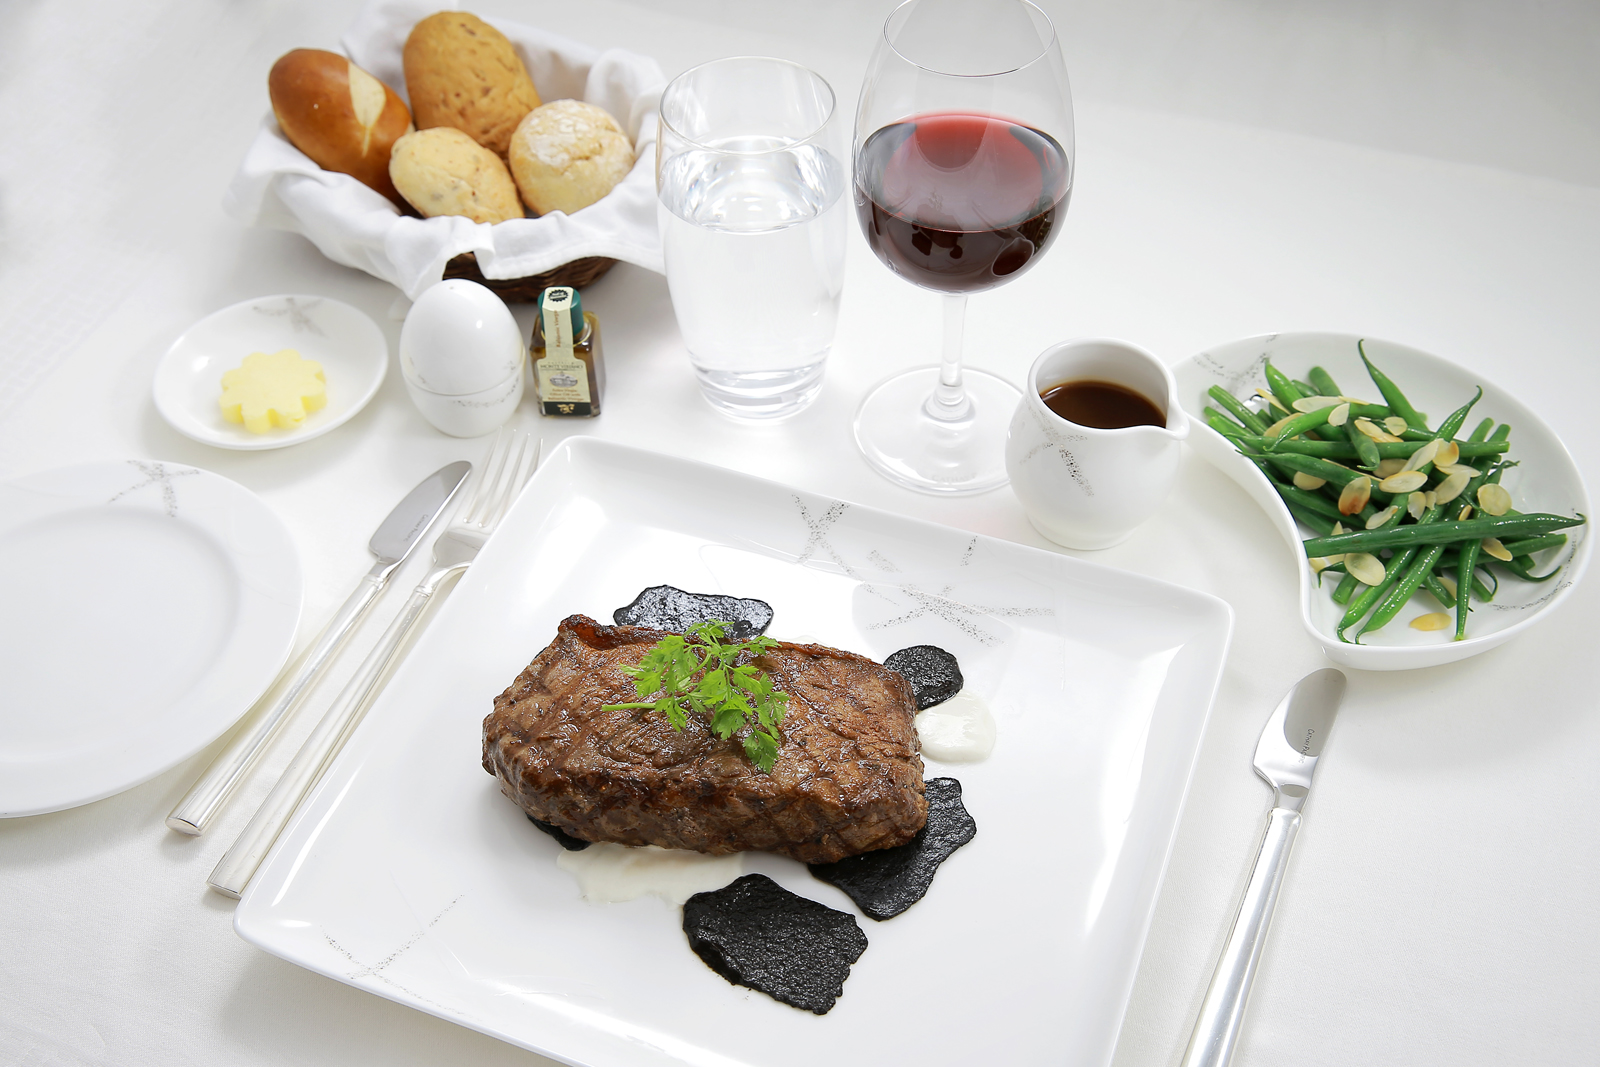 cathay-pacific-first-class-food-1